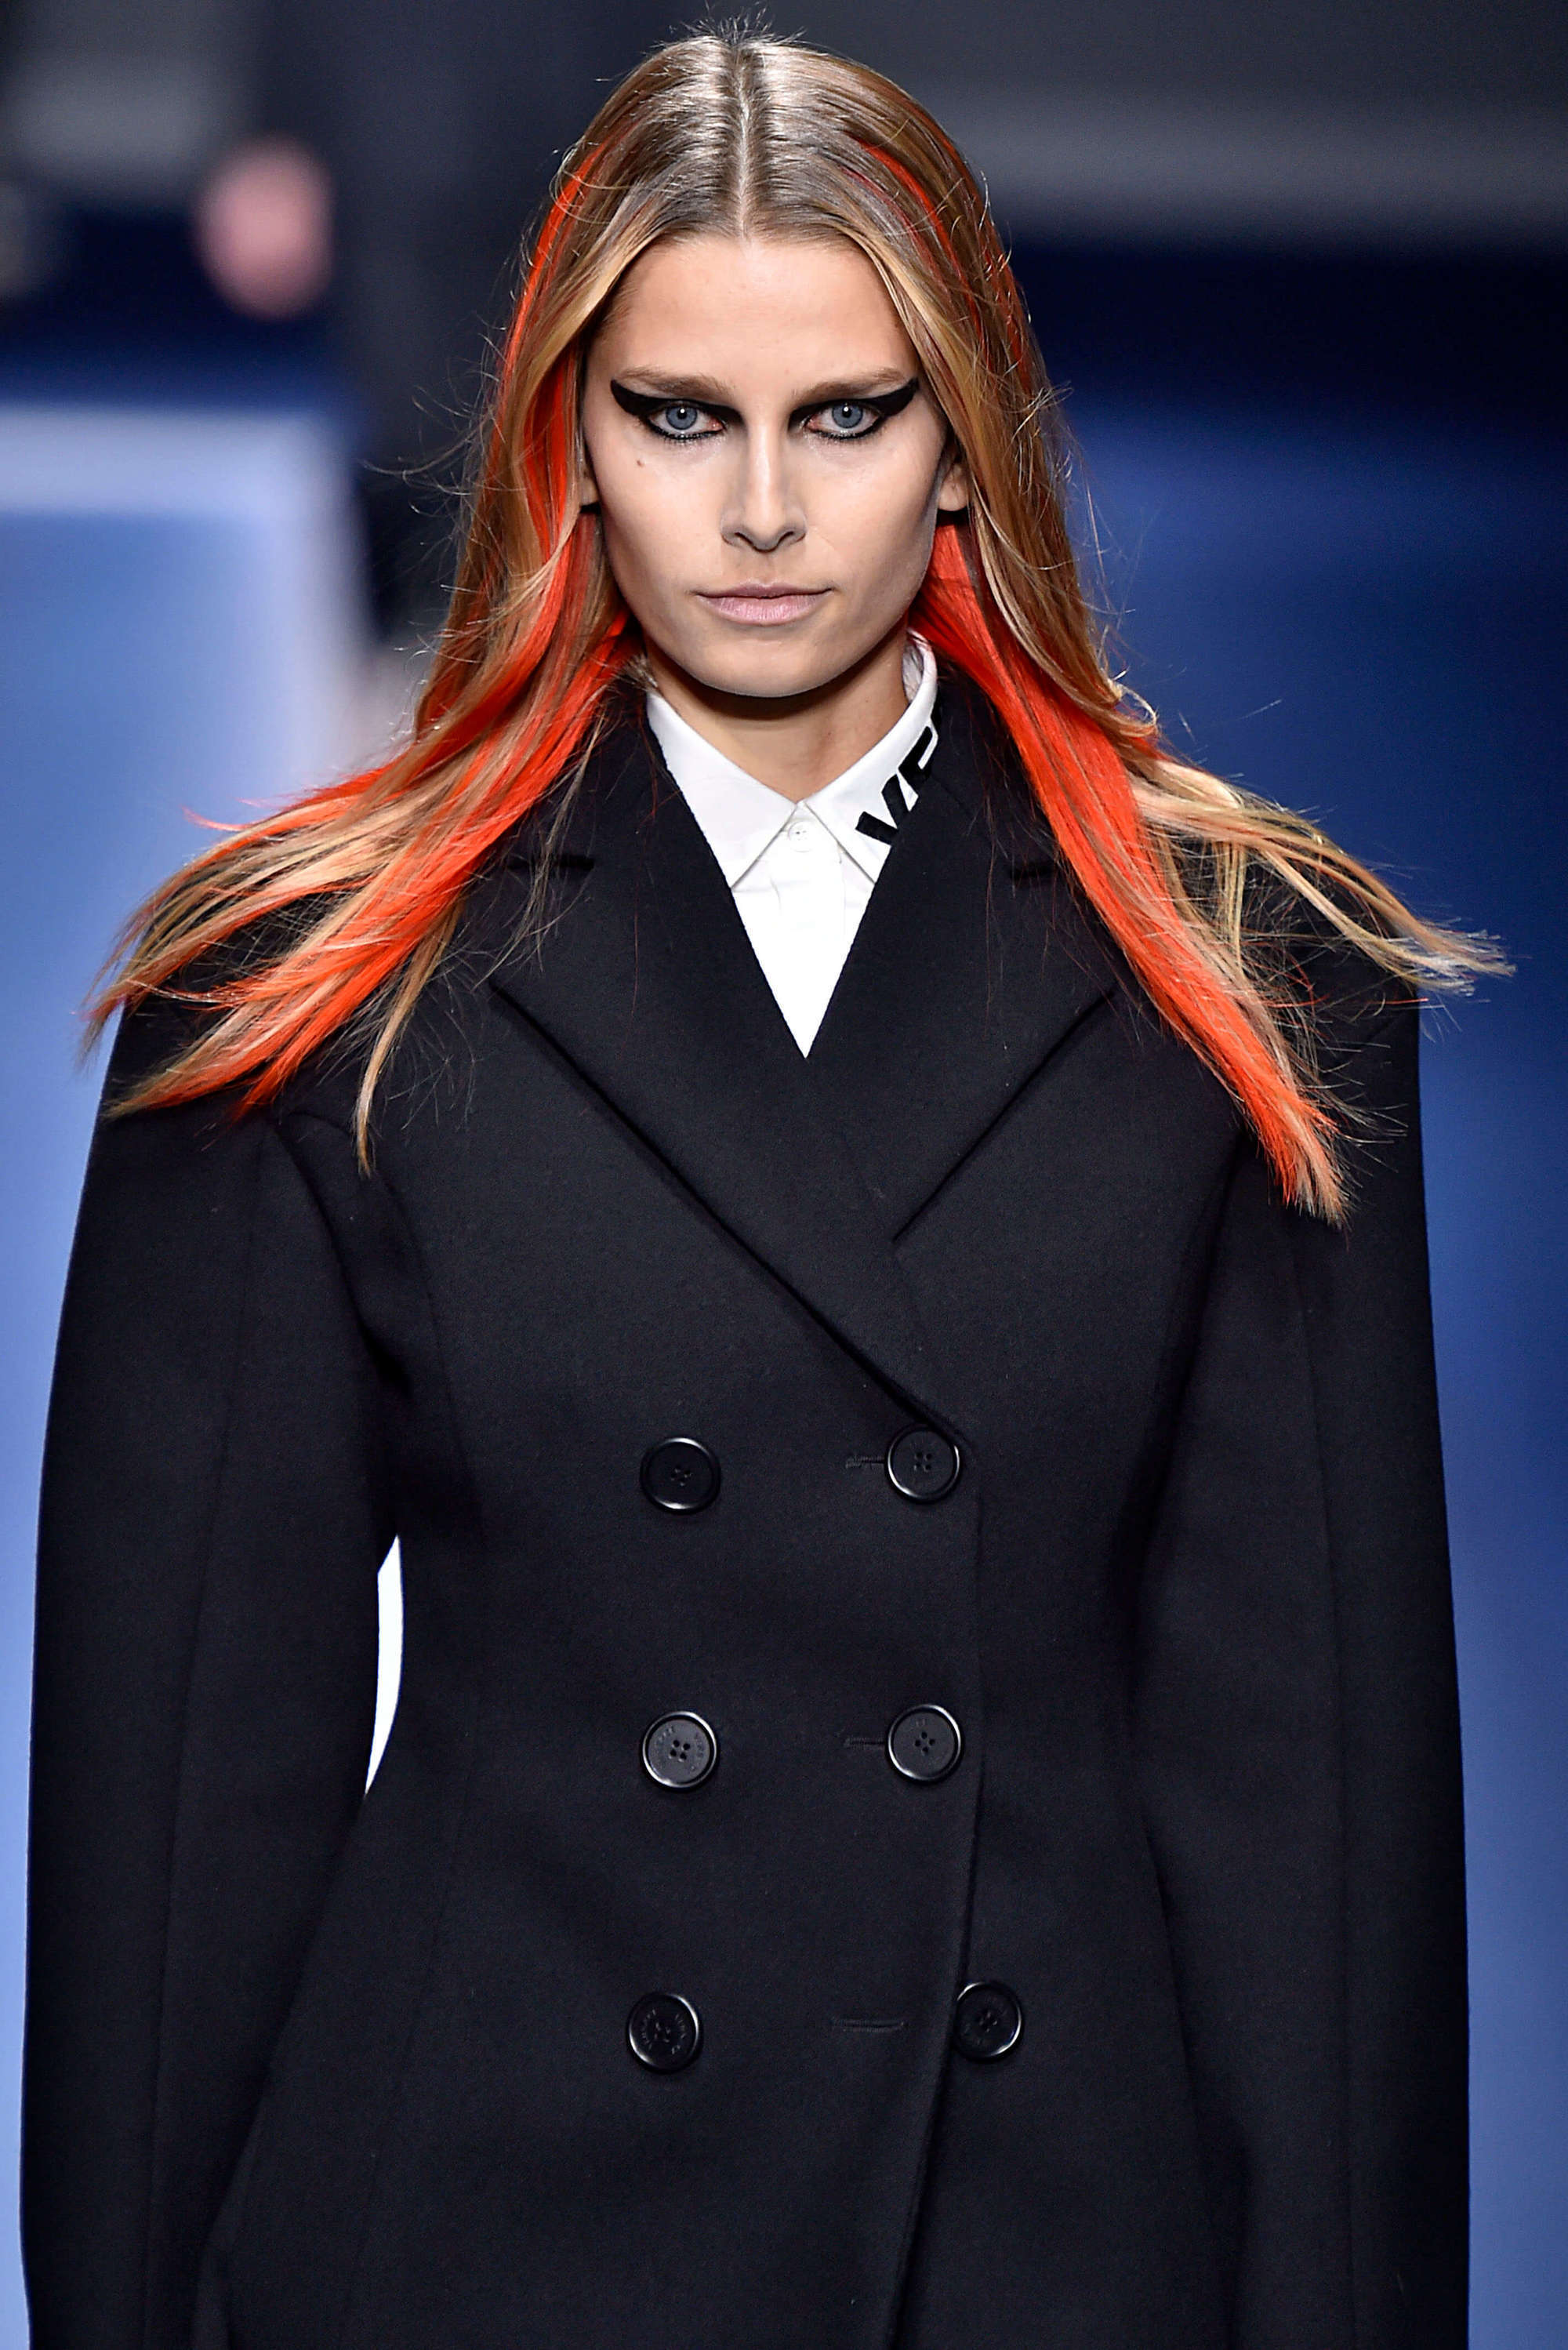 new hair trends with bold colors